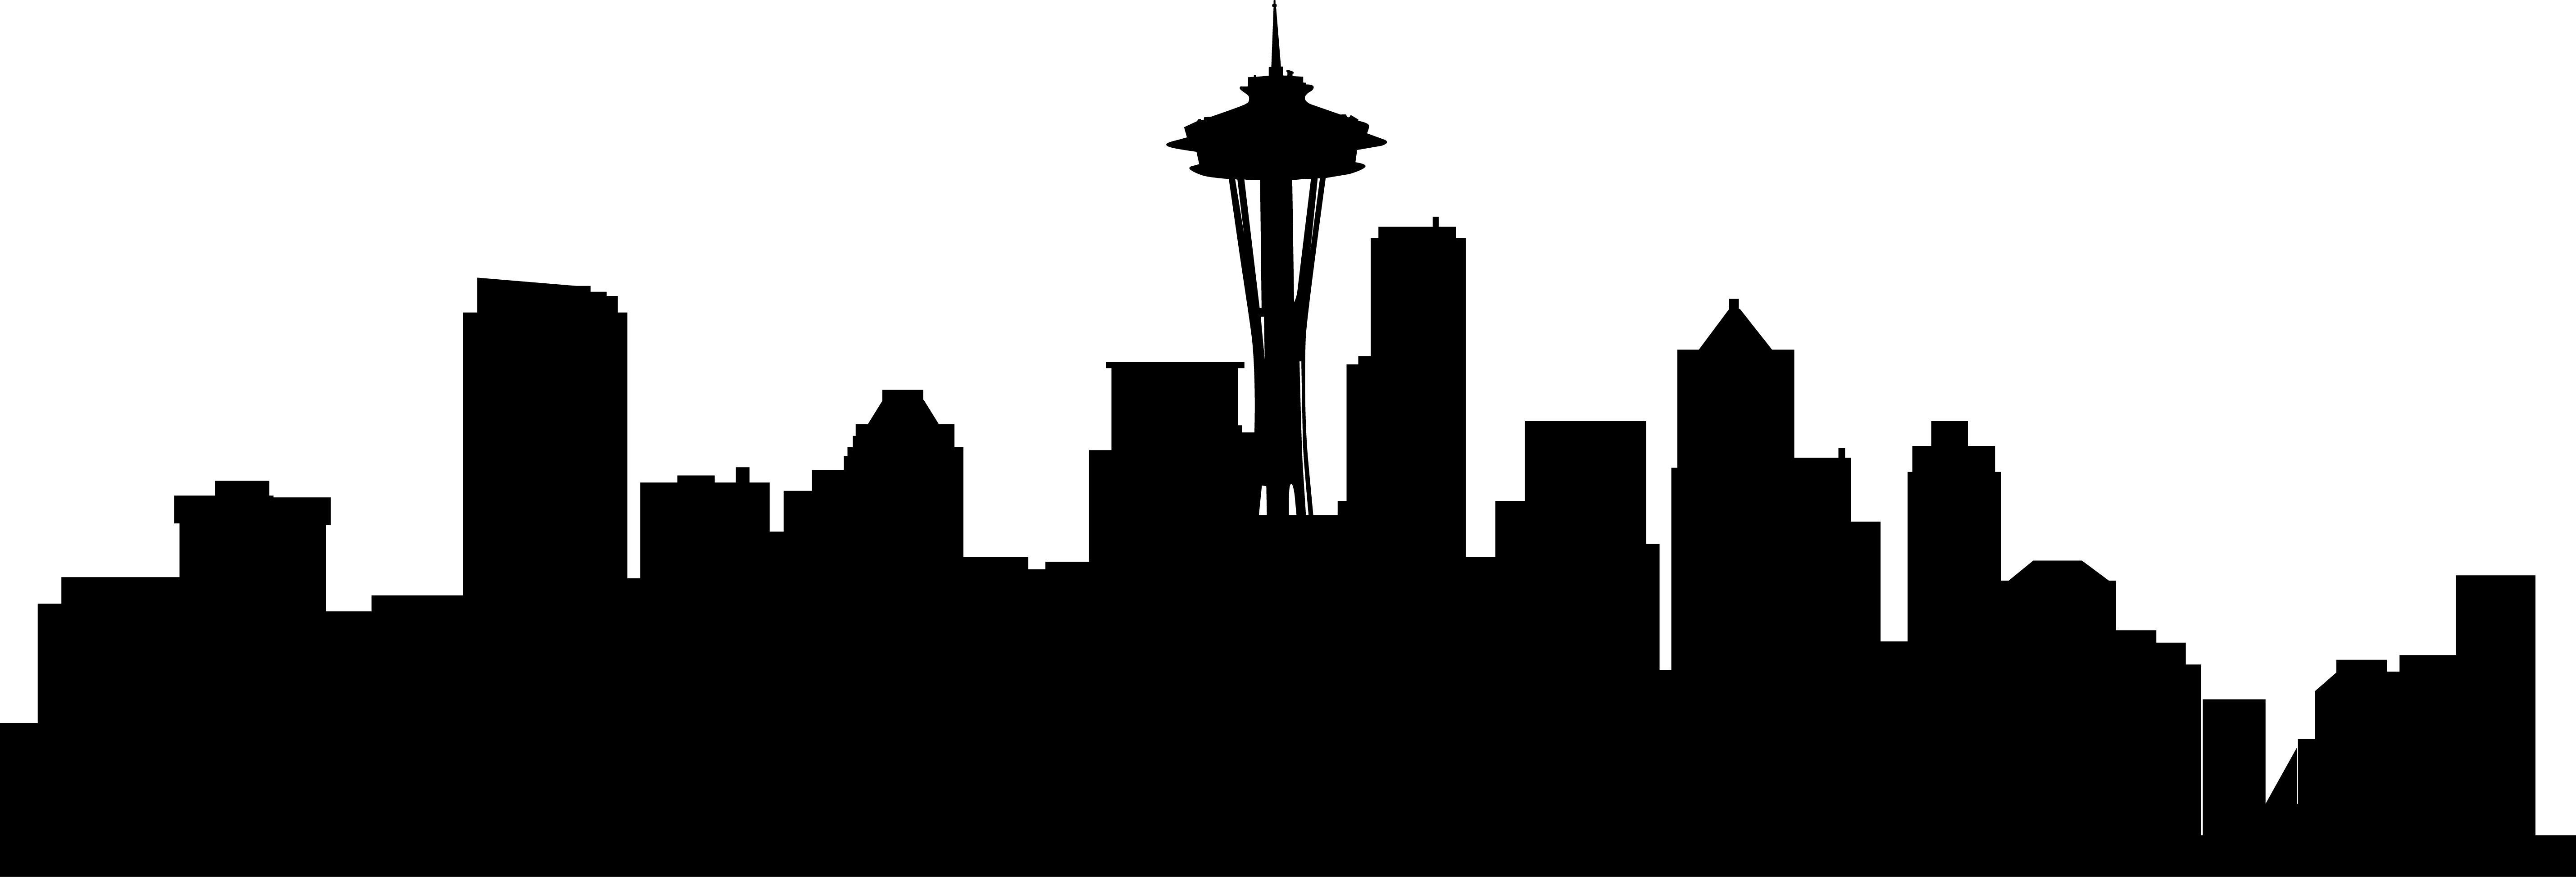 city skyline silhouette vector at getdrawings com free for rh getdrawings com skyline vector pack free skyline victory manufactured home